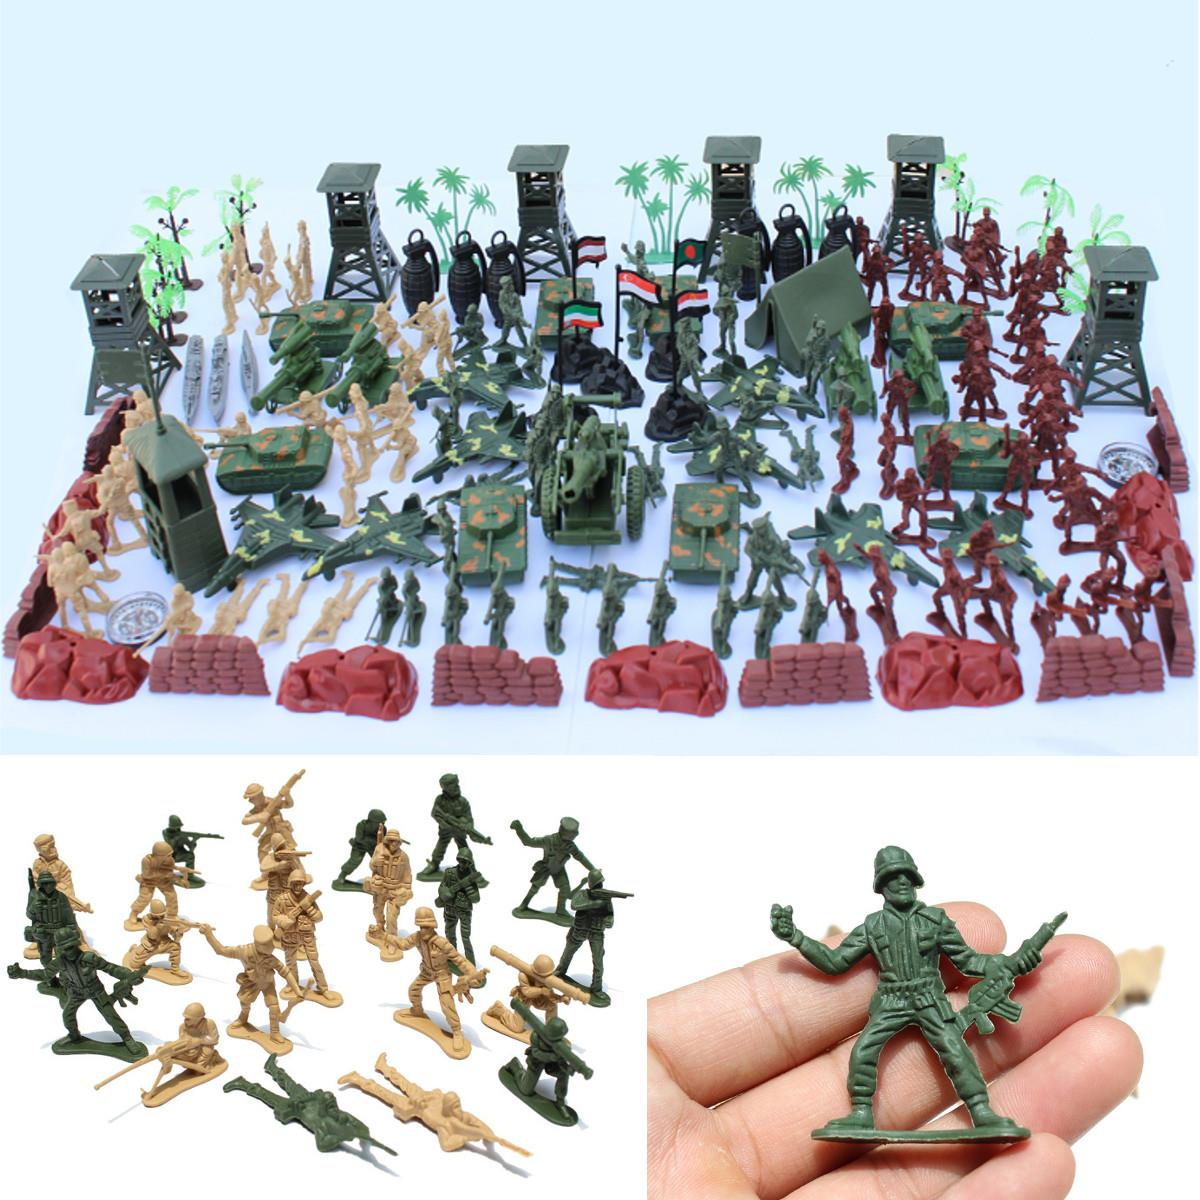 170pcs/set Military Plastic Model Toy Soldier Army Men Figures & Accessories Playset Kit Decor Gift Model Toys For Children 170pcs set military plastic model toy soldier army men figures